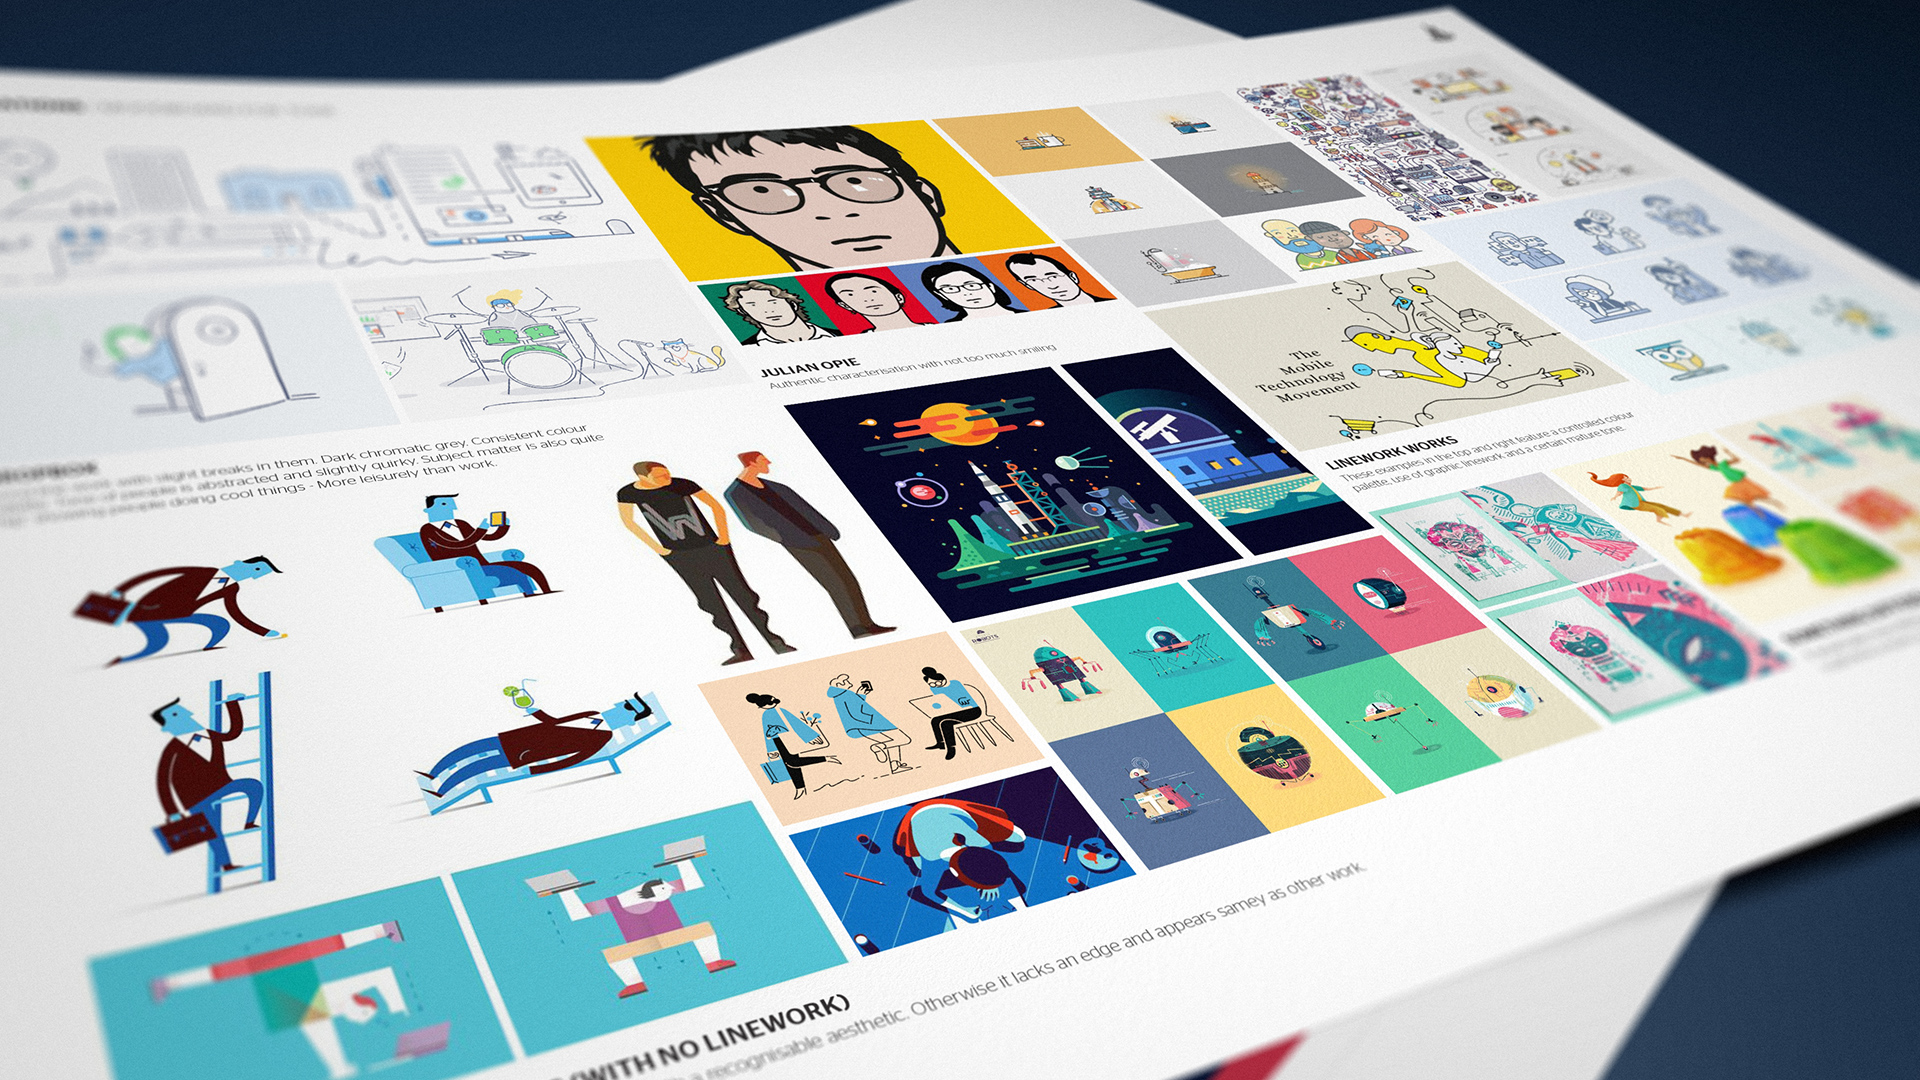 We provided guidance to the internal design team on how to undertake software storytelling using simple illustrations with a balanced colour palette.